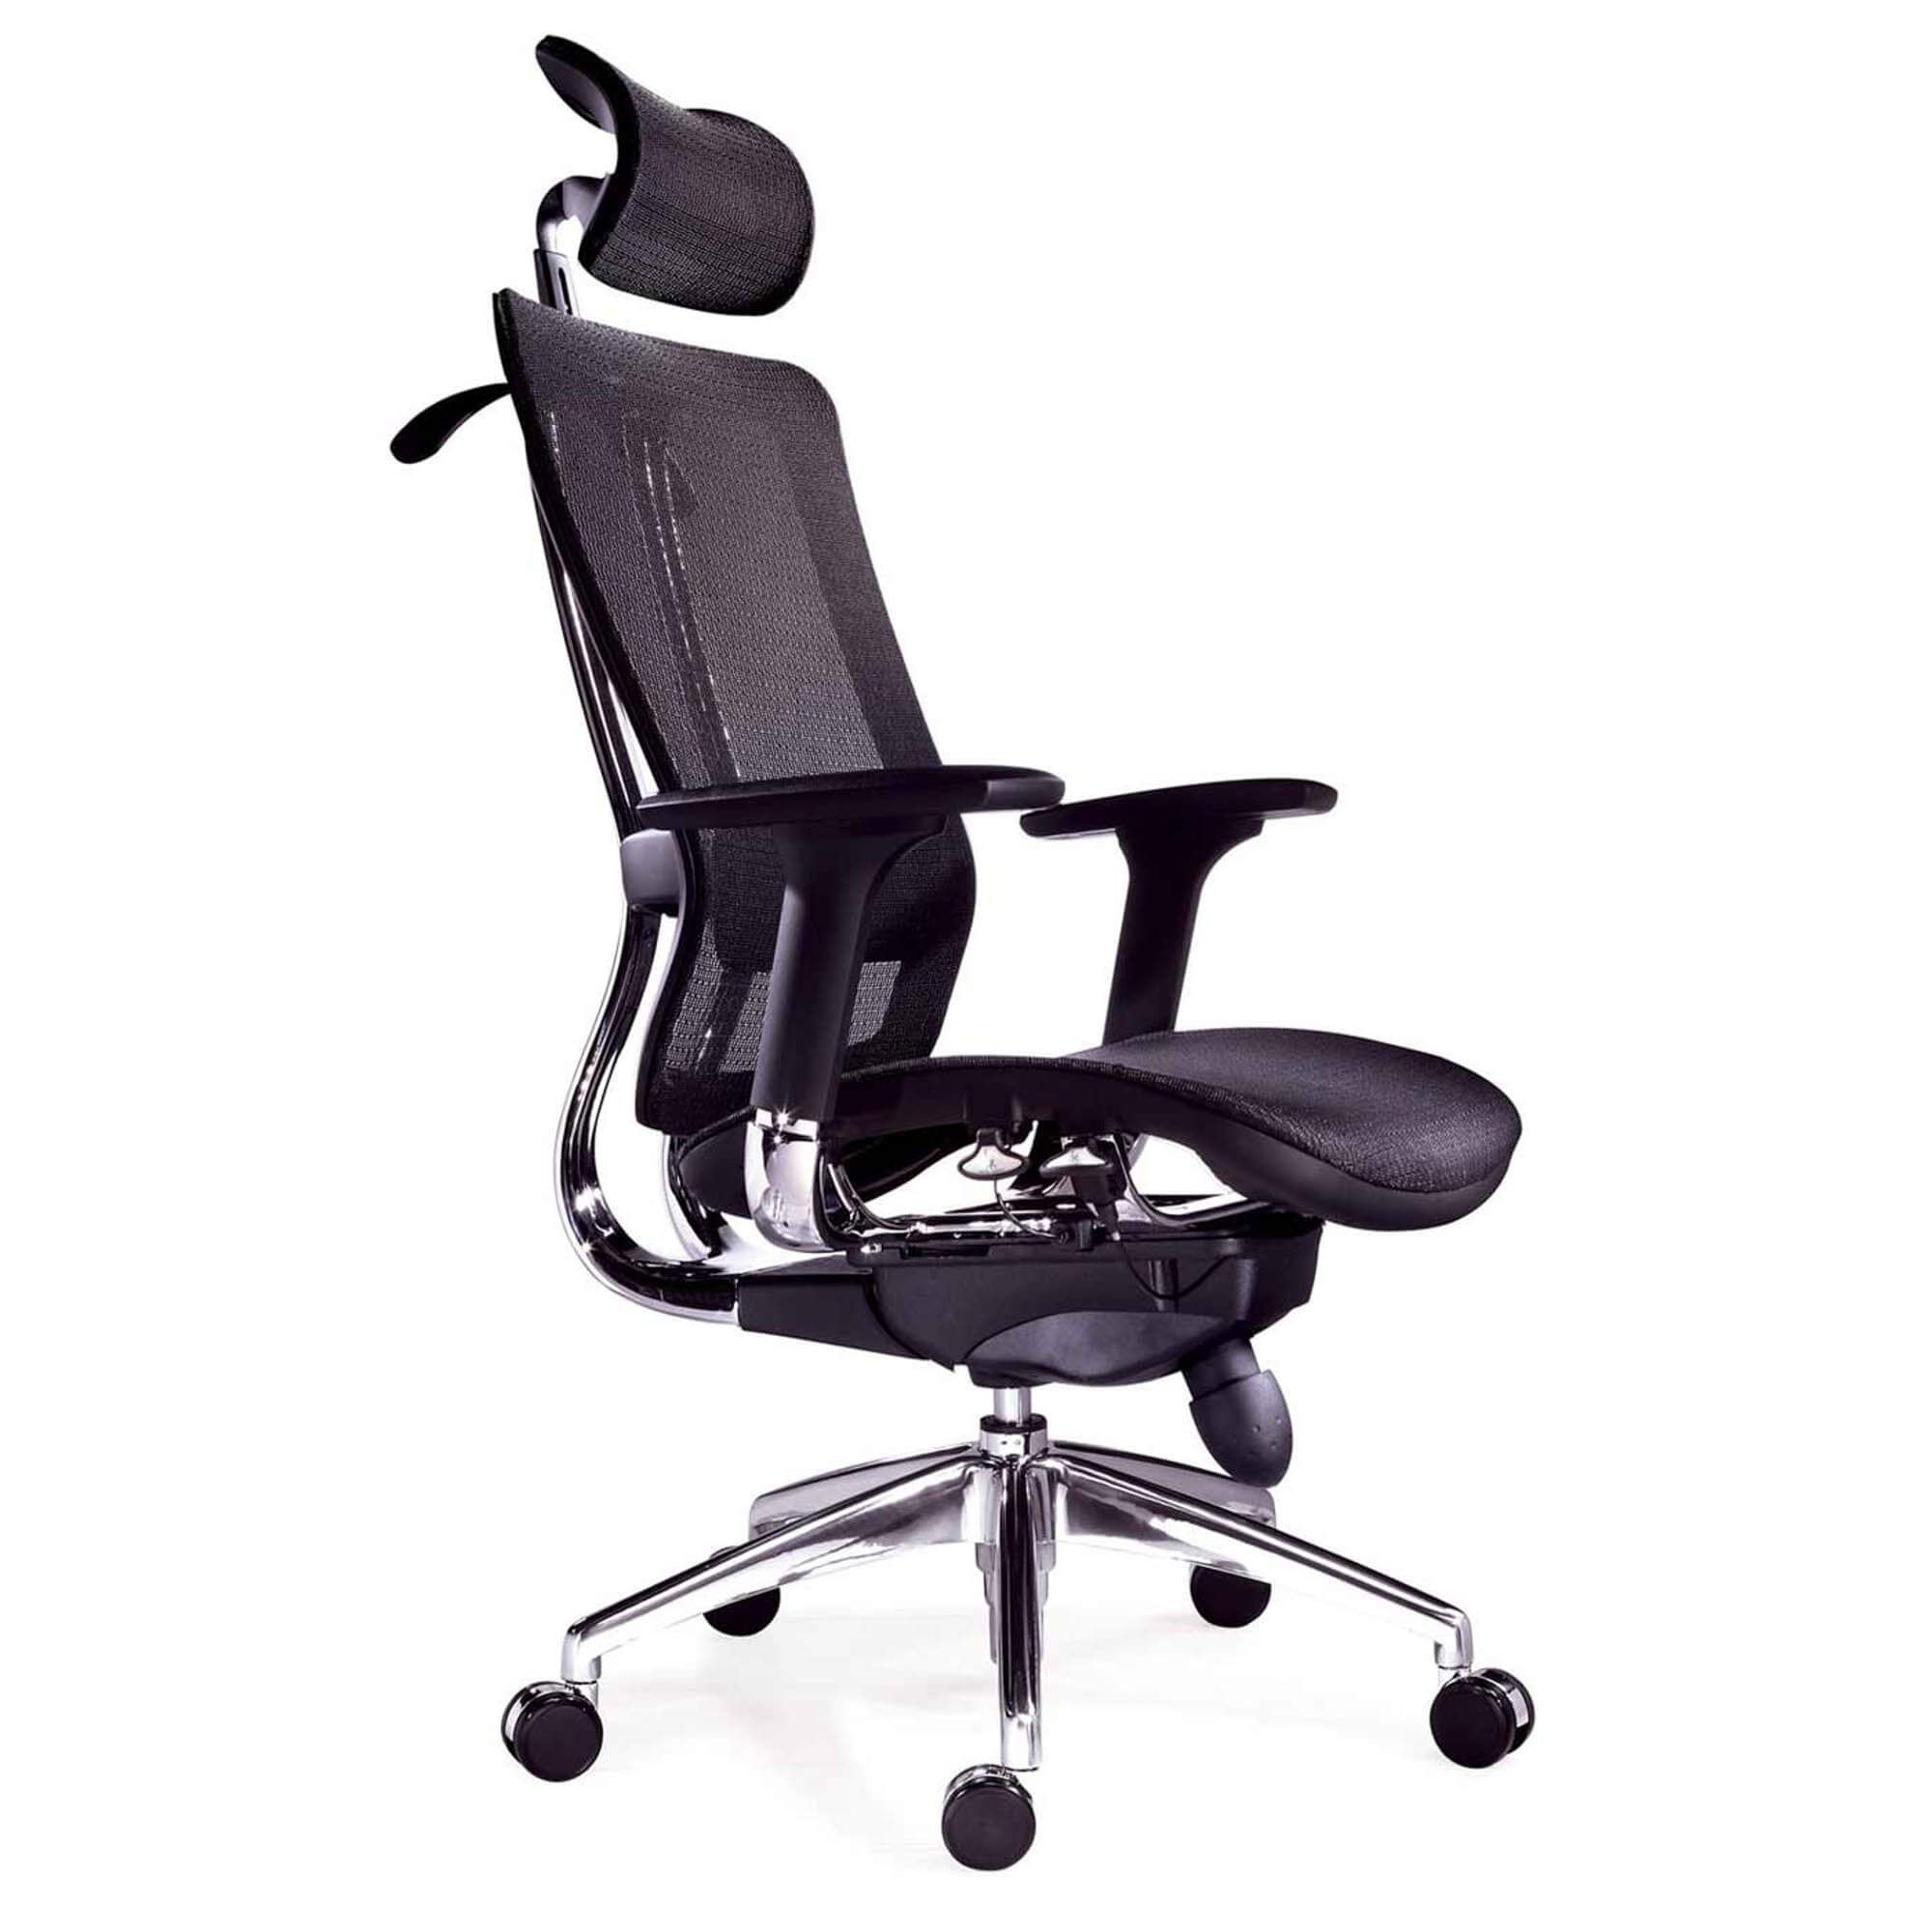 Best Office Chair For Lower Back Pain On Elegant Home Design Within Proportions 1786 X 3185 Desk It Seems The Rustic Cottage And Lodg